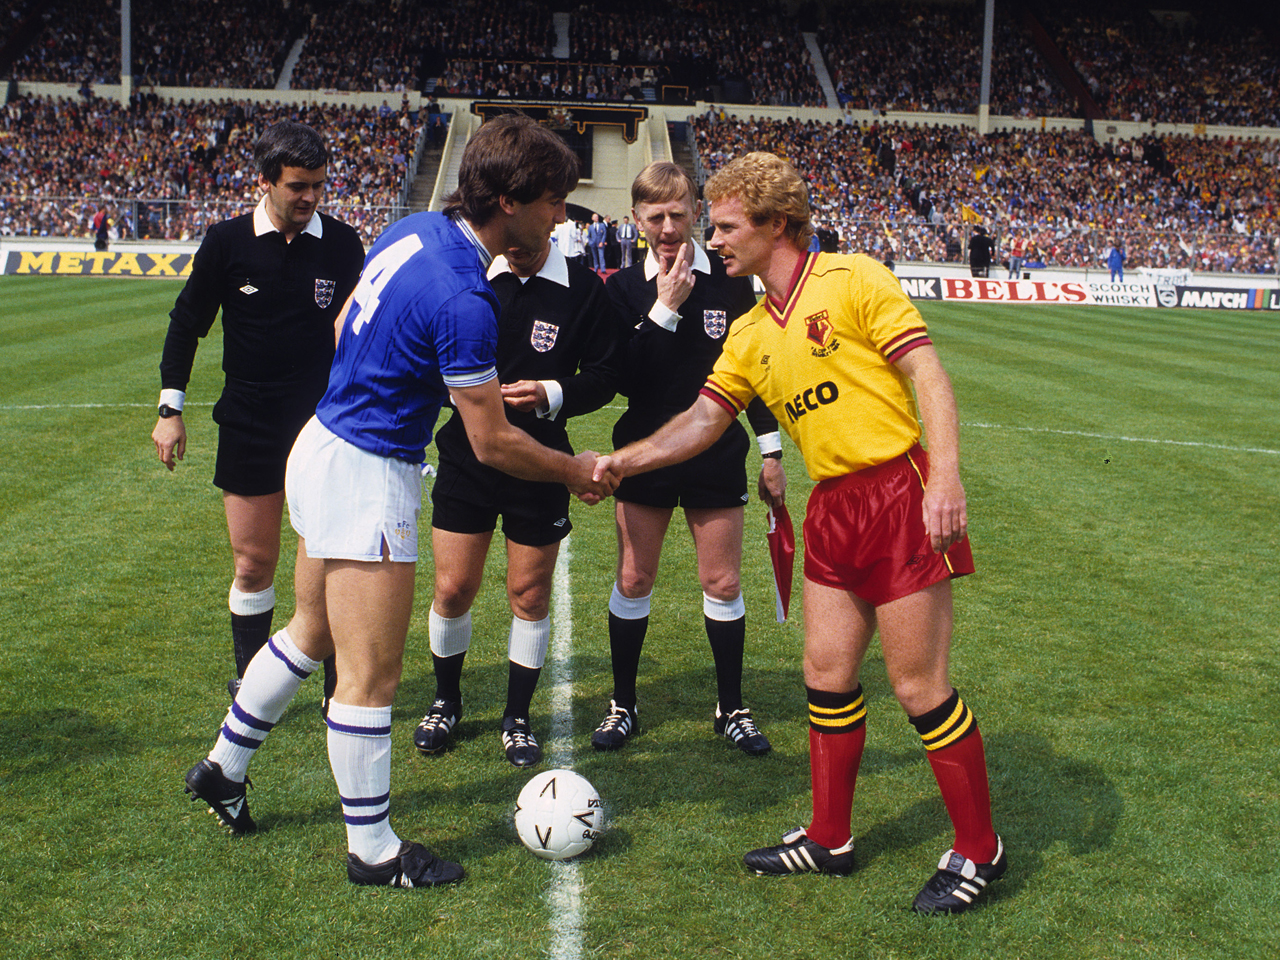 Watford FC Archive Season 1983-84 FA Cup Final Pic Alan Cozzi 07968336683 Everton v Watford 19/05/1984 Watfords Les Taylor and Evertons Kevin Ratcliffe